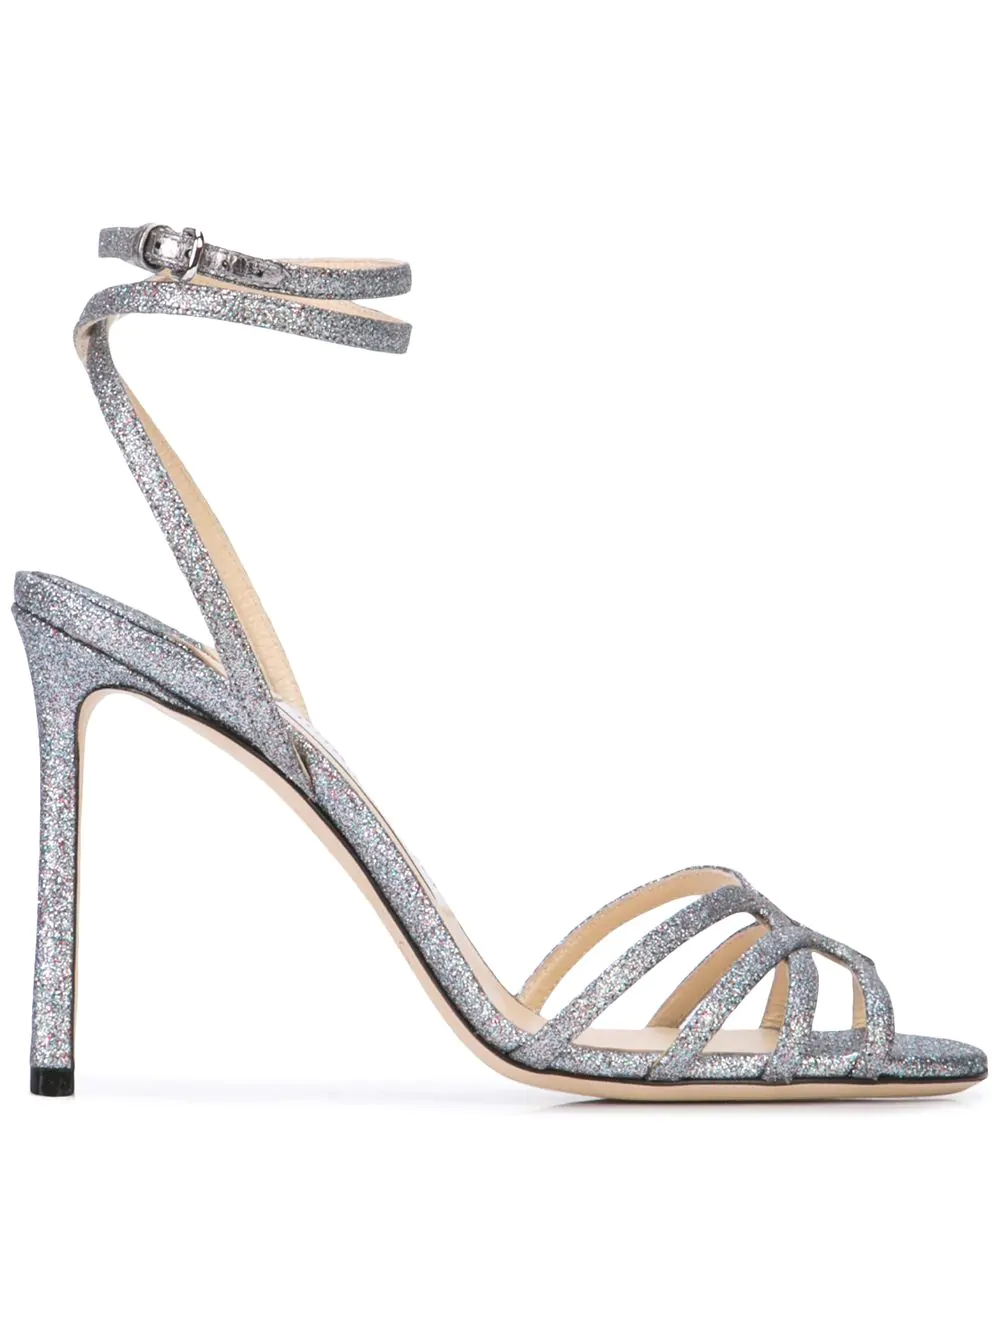 51a16e19a Jimmy Choo Mimi 100 Anthracite Metallic Nappa Leather Wrap Around Sandals  In Silver